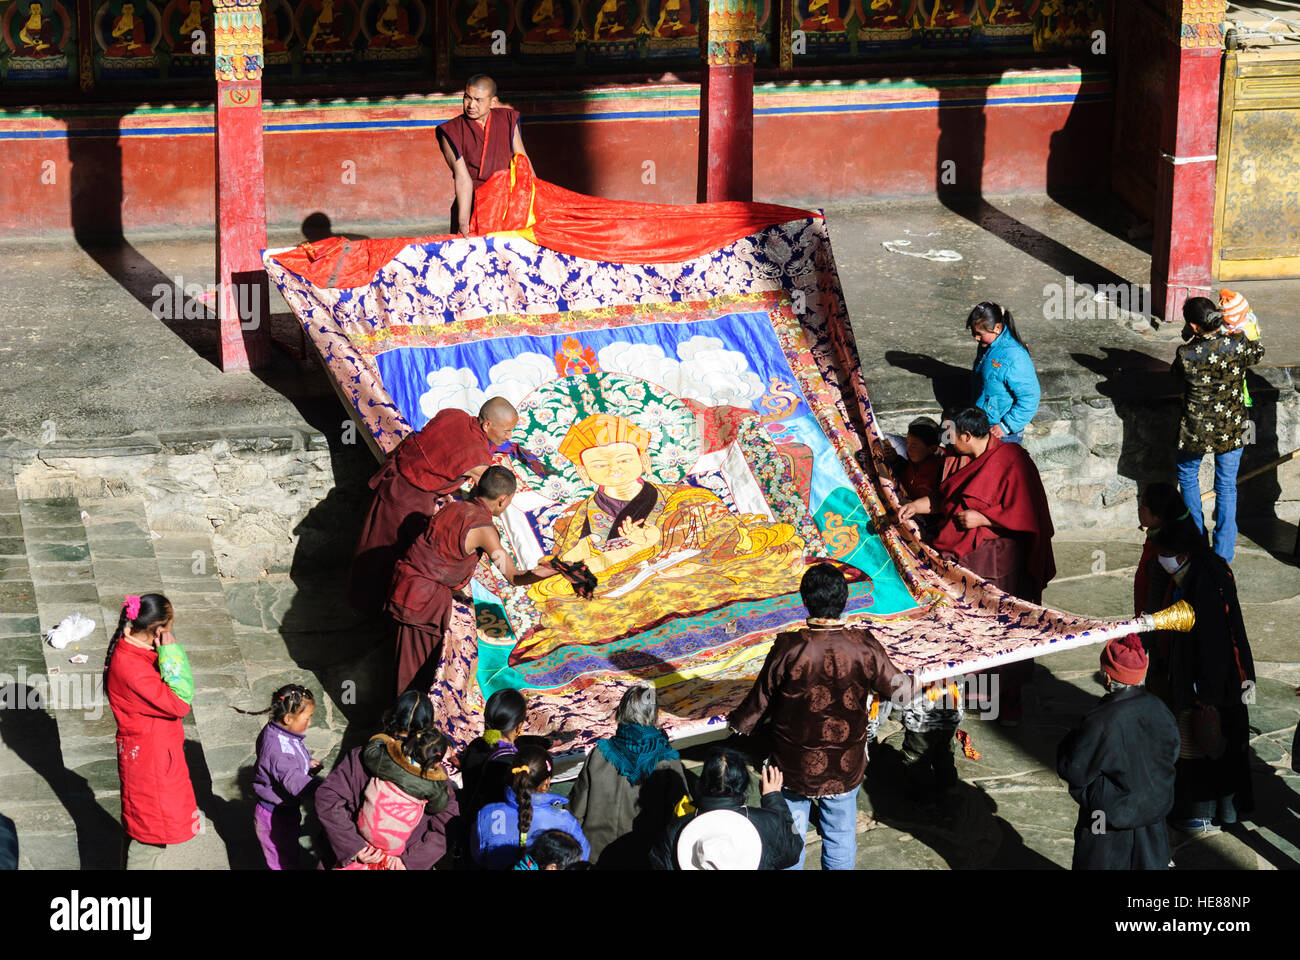 Shigatse (Xigaze): Tashilhunpo Monastery (seat of the Panchen Lama); Kelsang Temple; A thangka (roll image) is tentatively - Stock Image